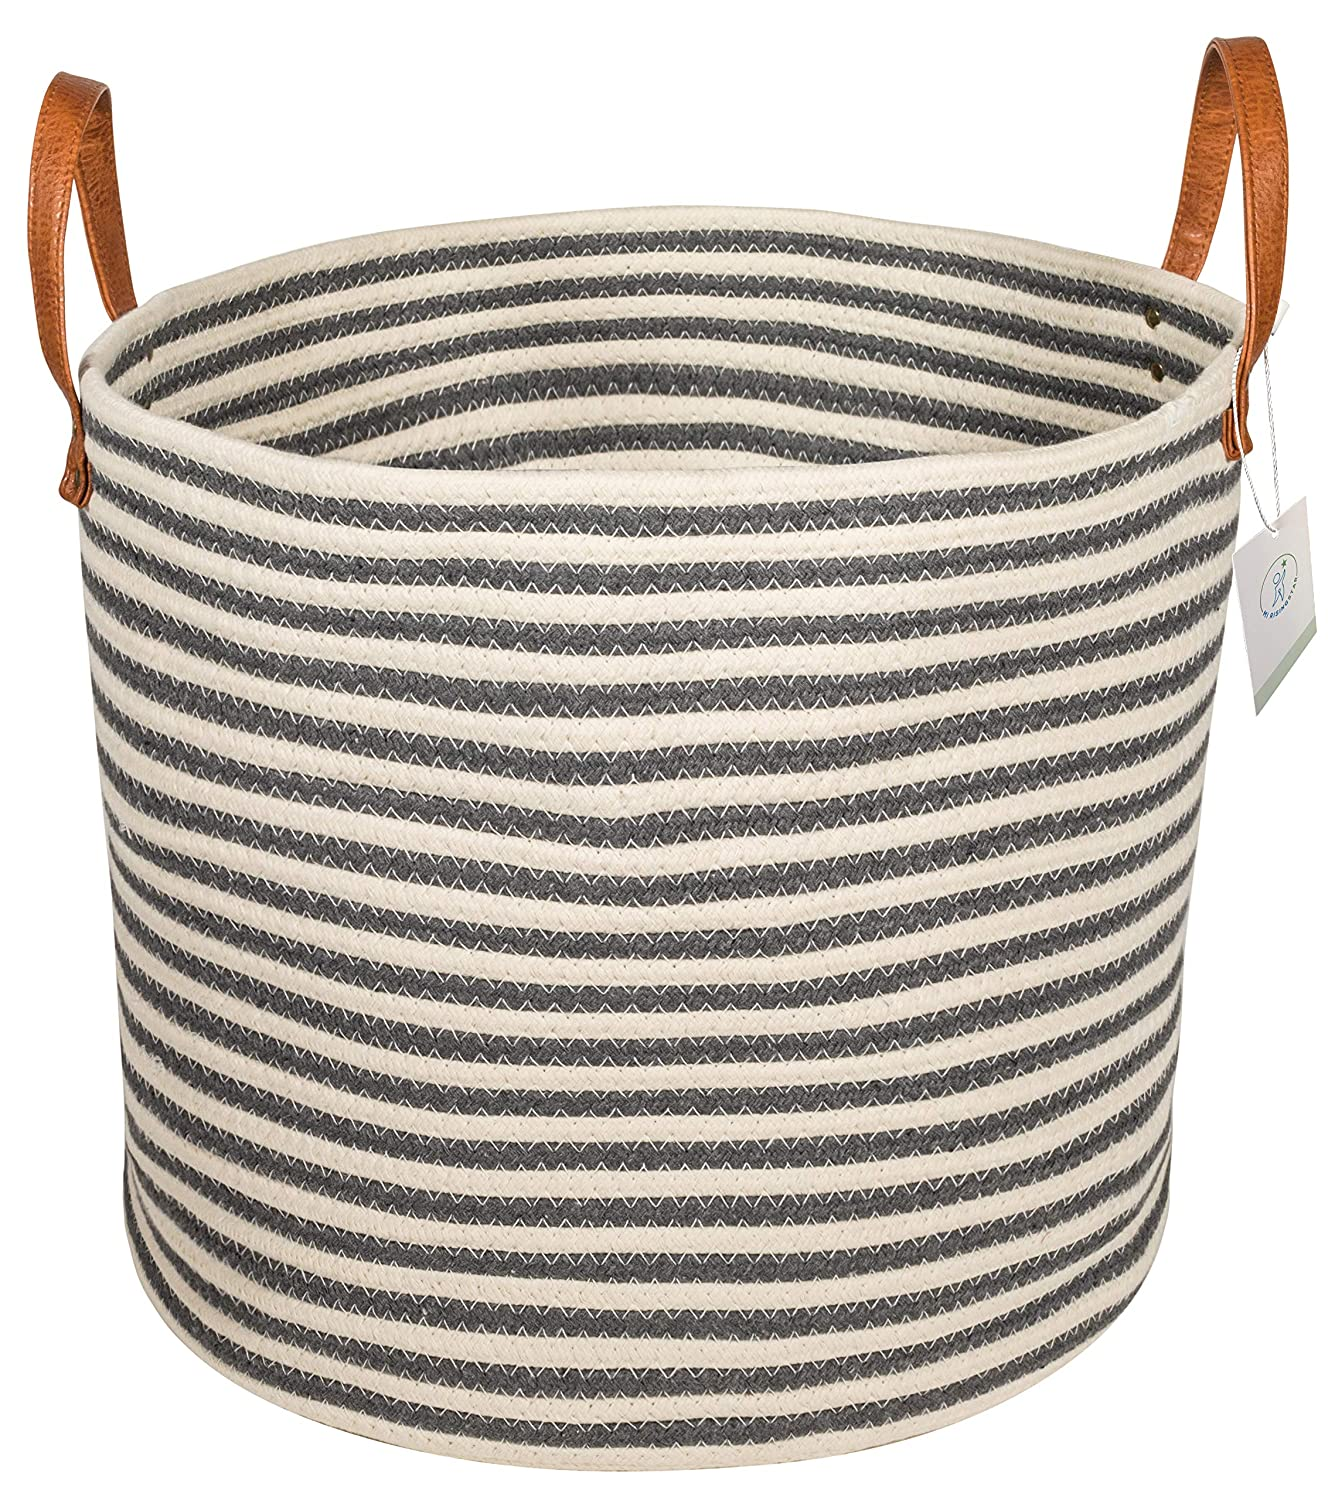 Large leather handled cotton rope stripe storage basket - imagine all the rooms this sweet hard worker will enhance!